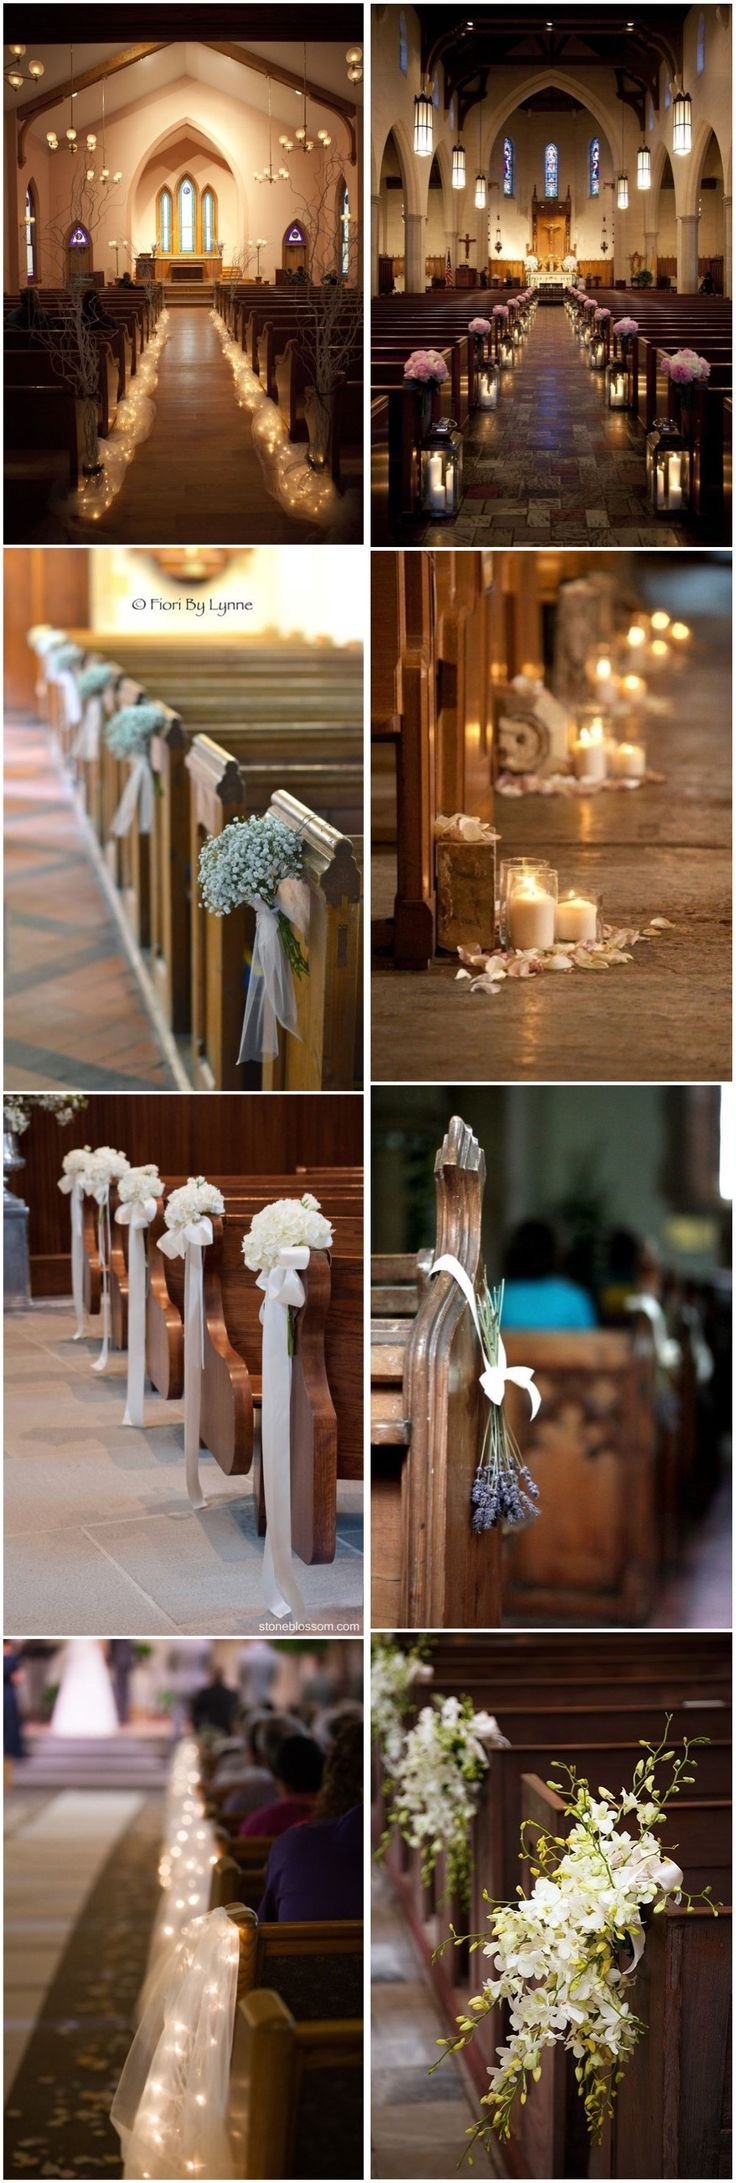 Church decorations also home  wedding aisles weddings and churches rh pinterest